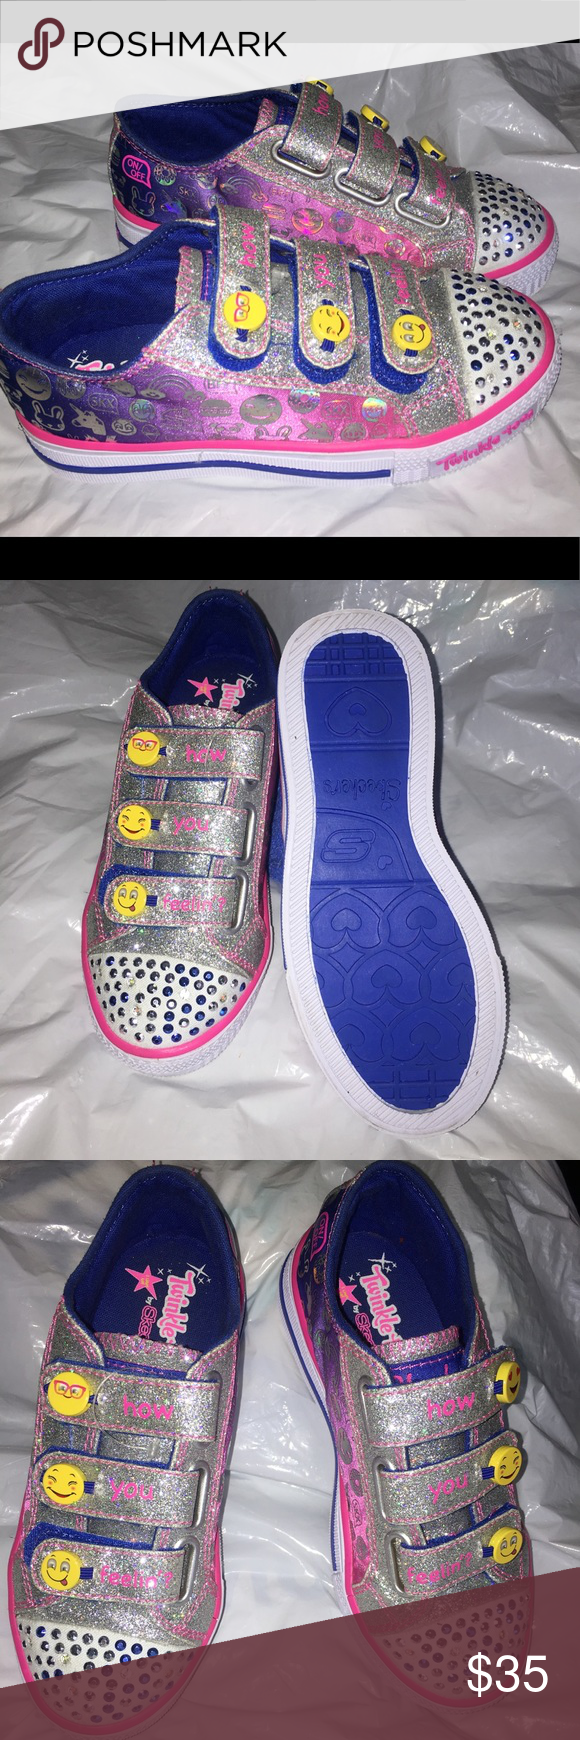 Sketchers Twinkle Toes girls size 12